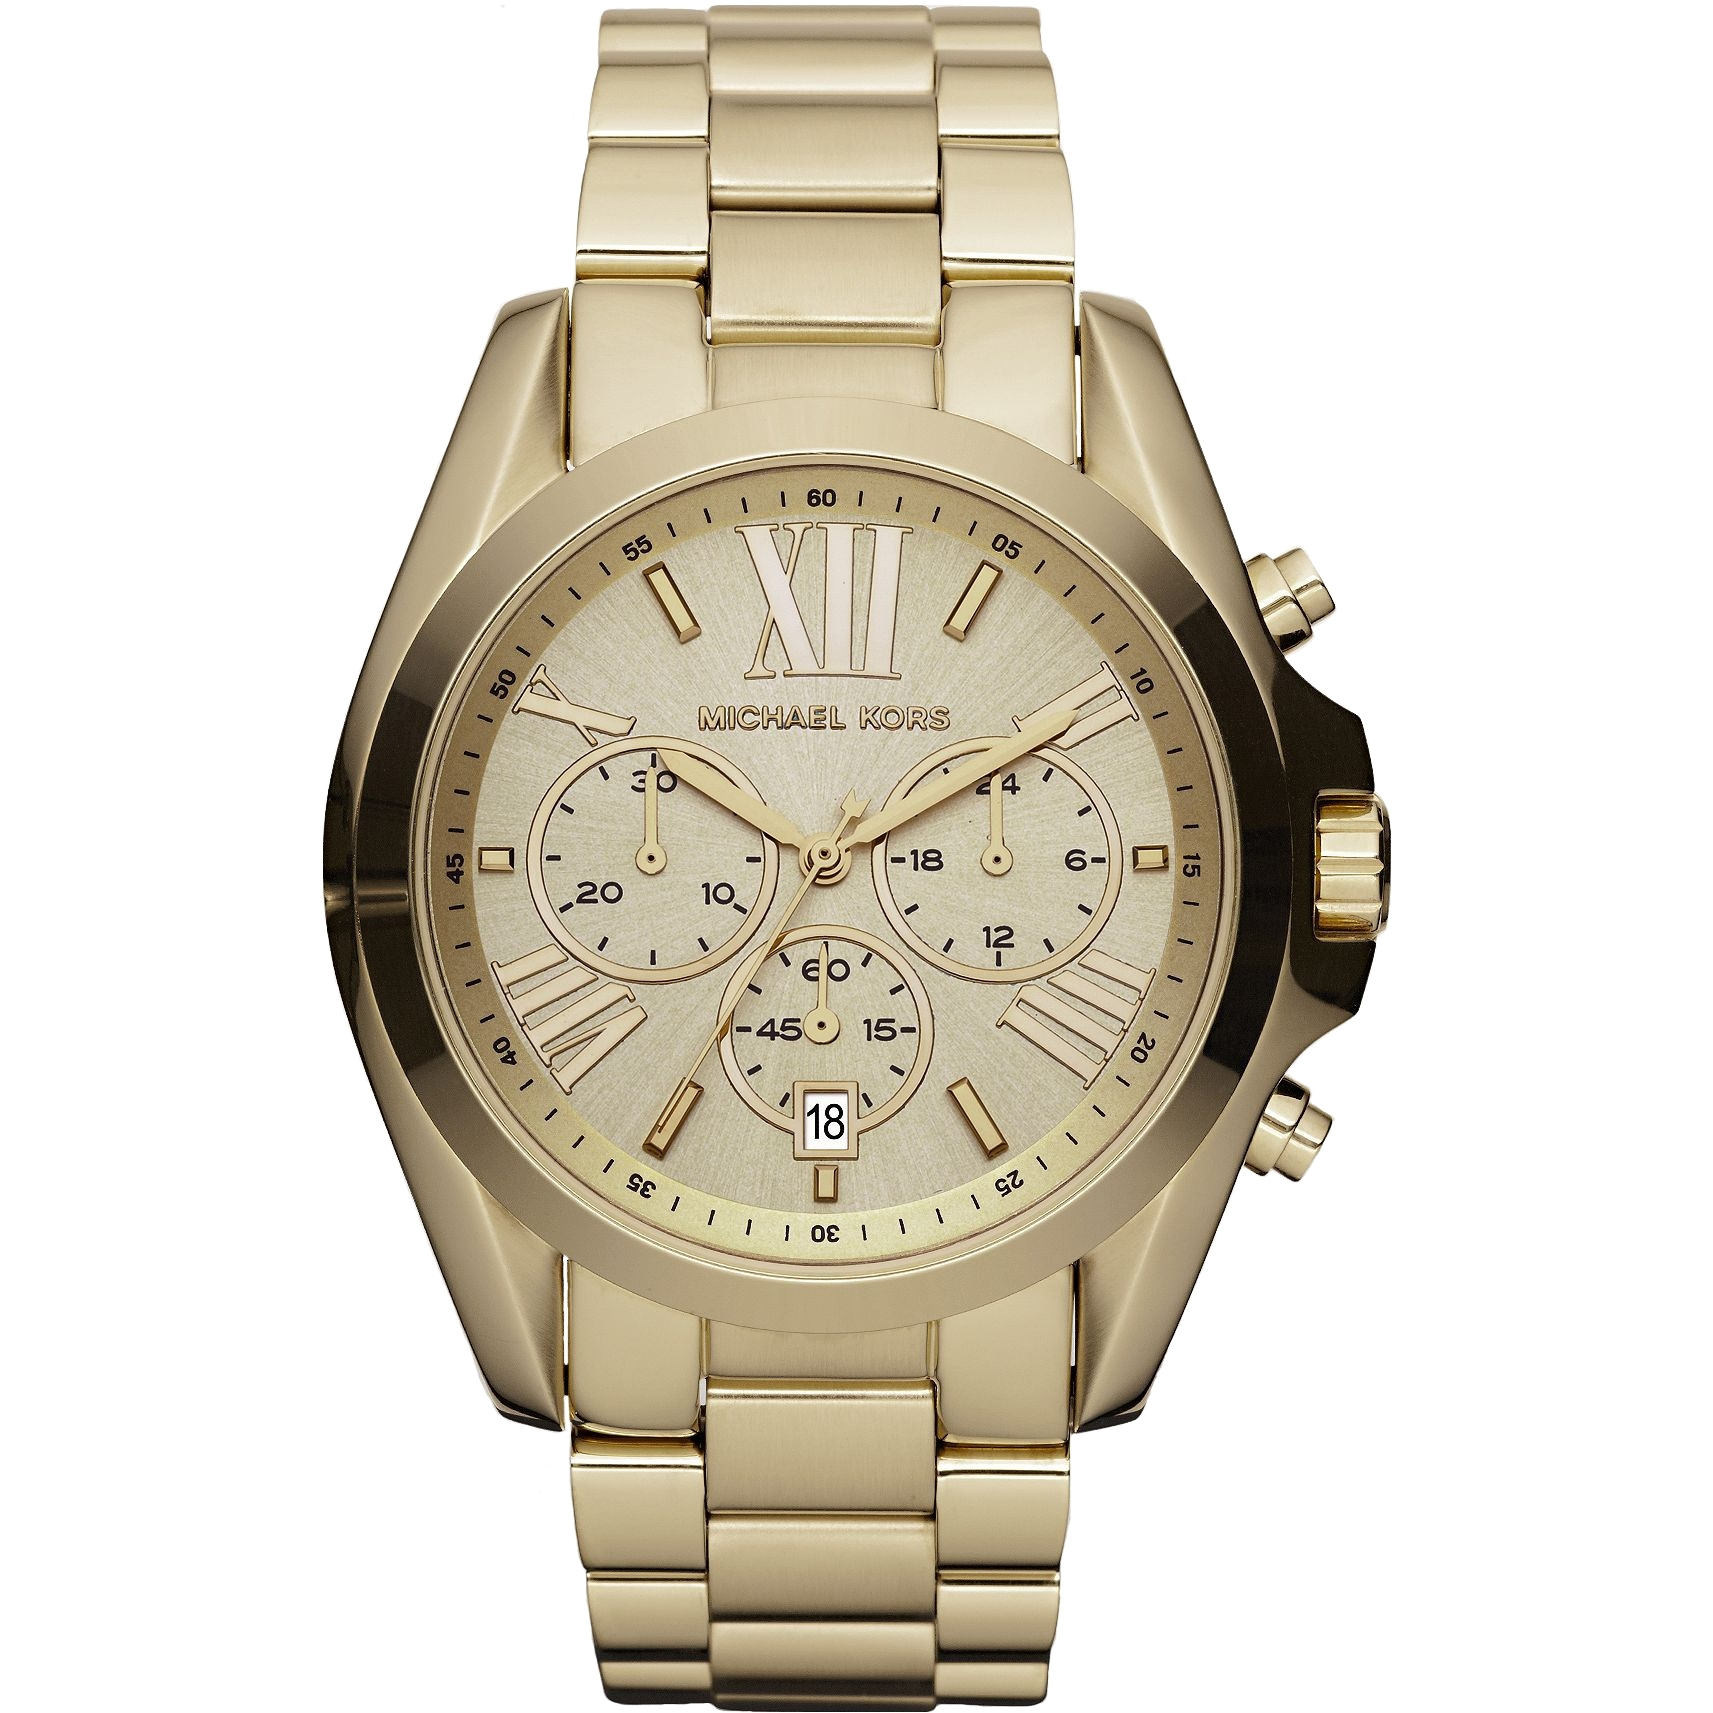 8e1d36cb9a97 Ladies Michael Kors Bradshaw Chronograph Watch (MK5605)